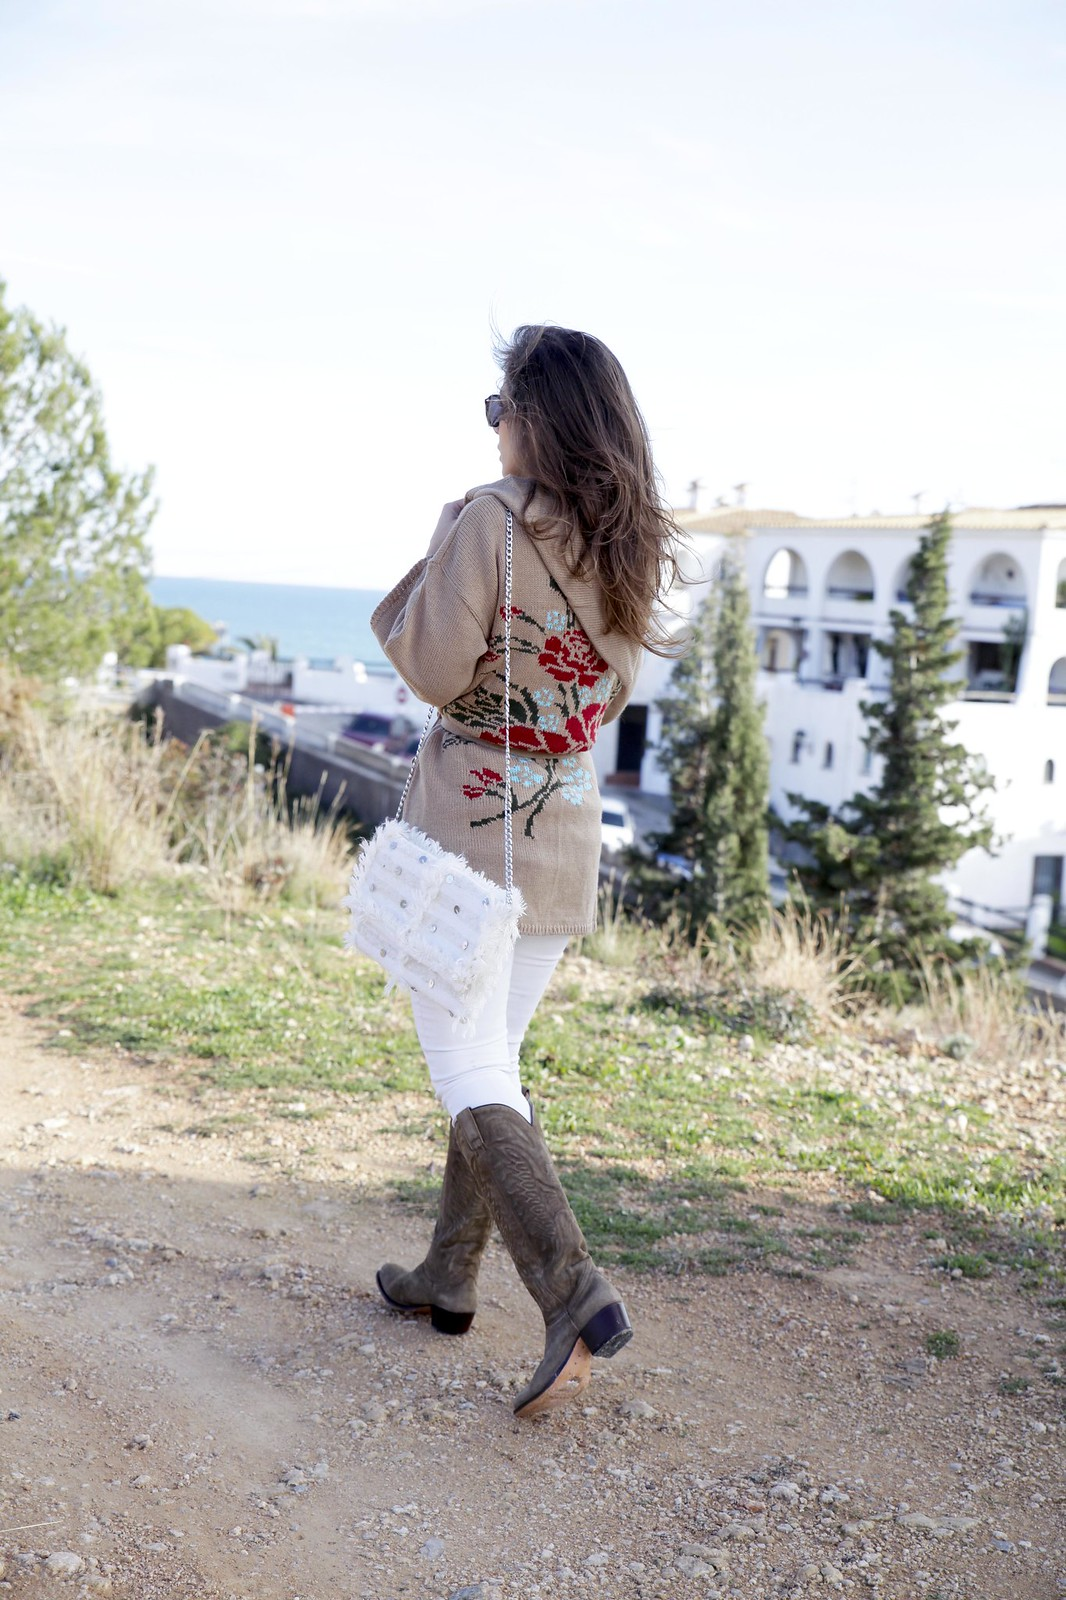 04_trend_alert_flowers_outfit_spring_blogger_influencer_barcelona_theguestgirl_laura_santolaria